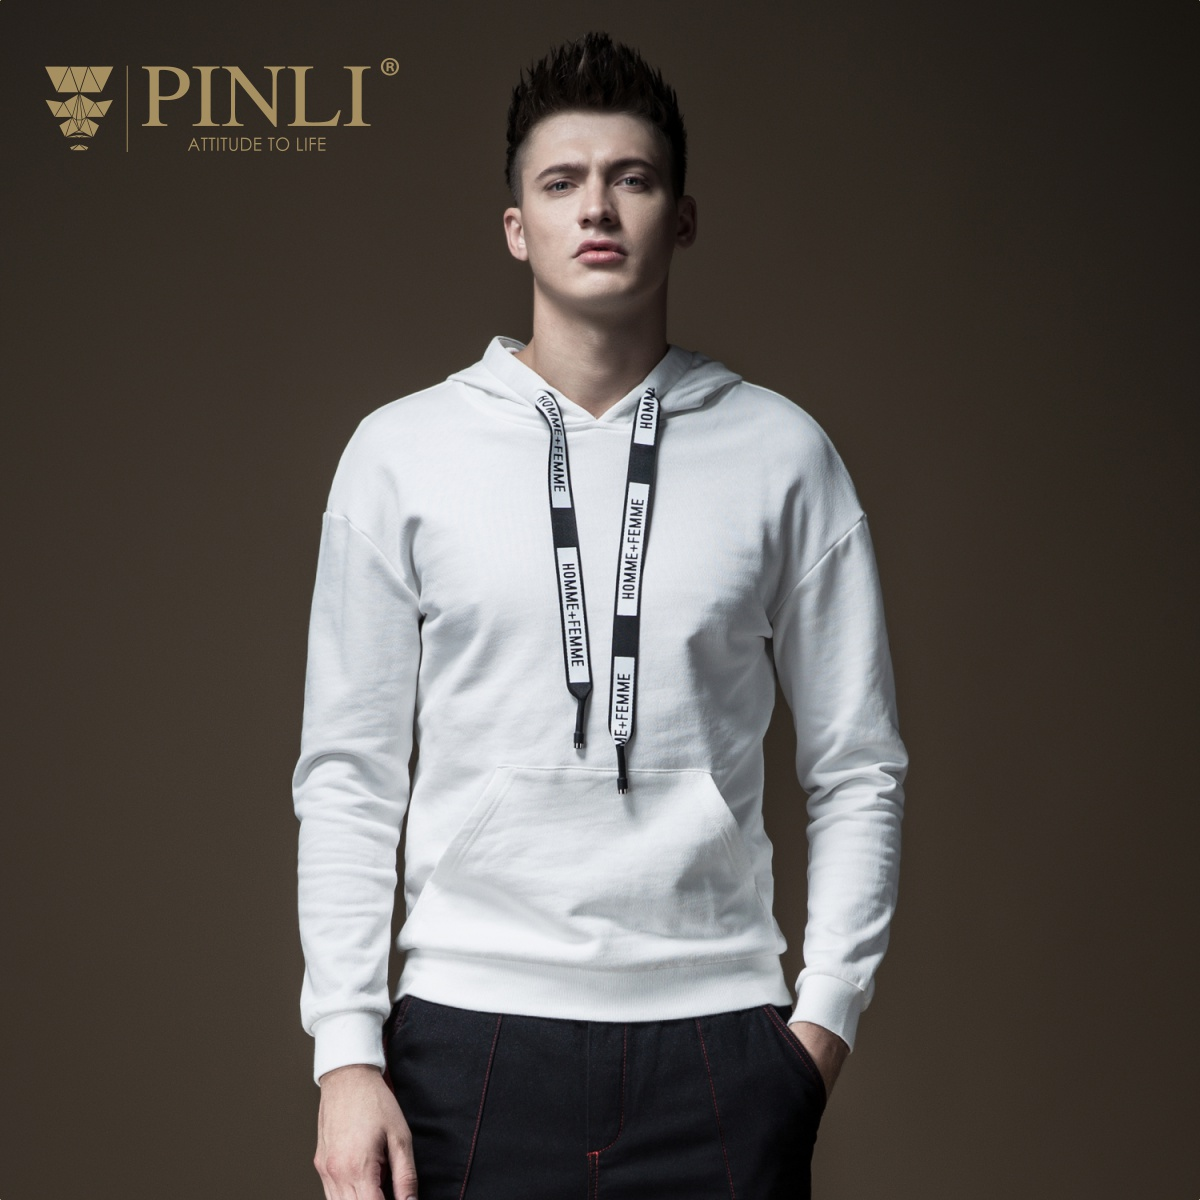 US $44 88 49% OFF|2018 Limited Linkin Park Palace Pinli Fall New Type Men's  Decorated Body Pure Colored Hat Leisure Sanitary Jacket B183109215-in